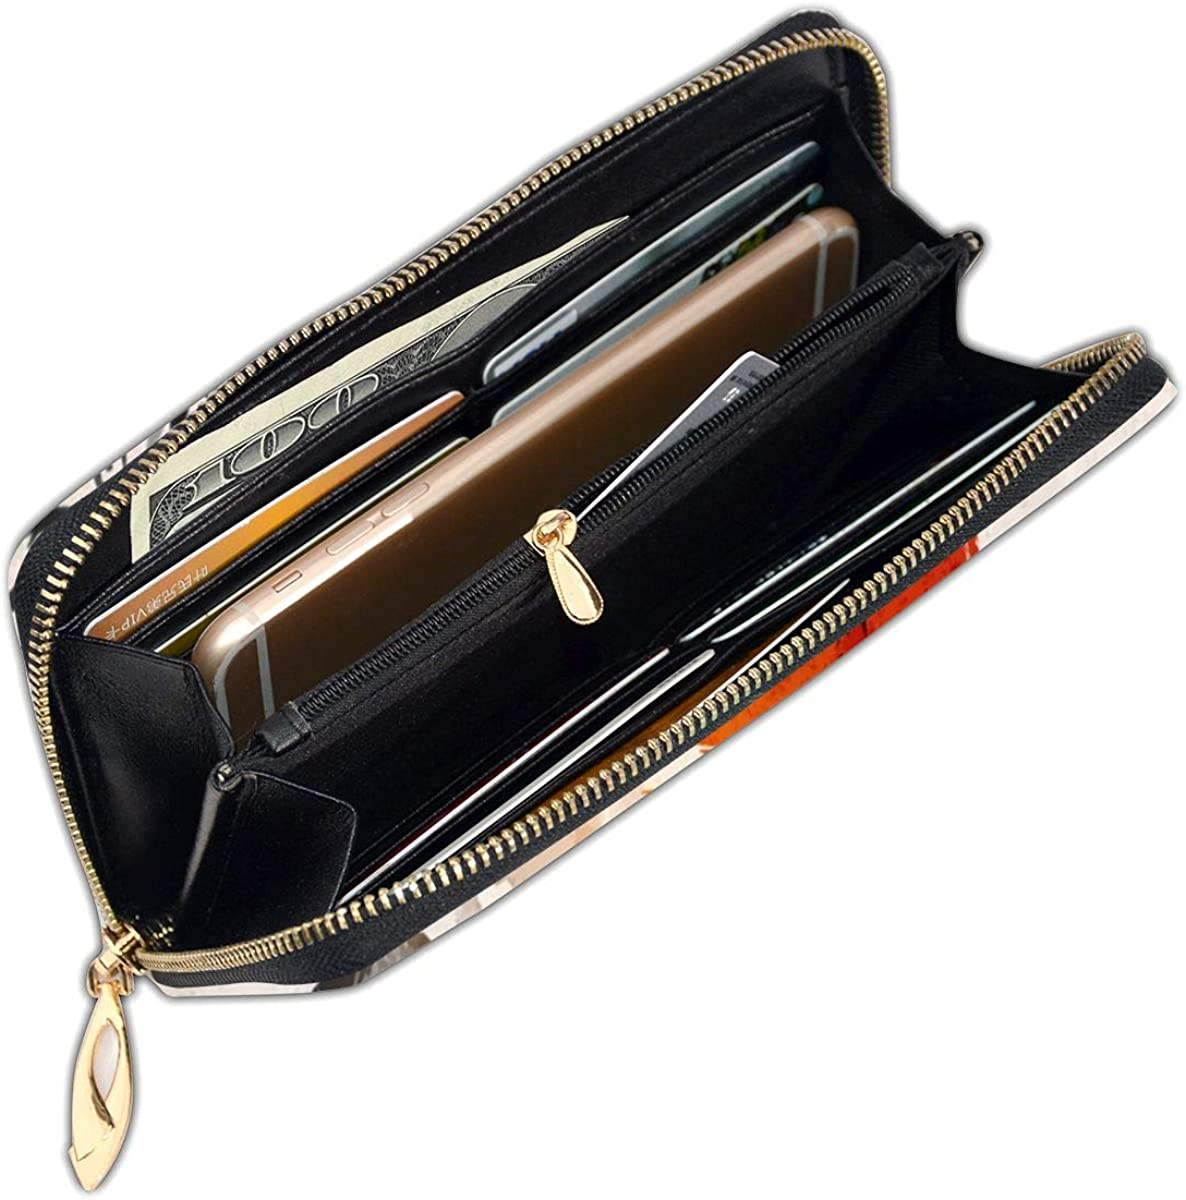 Bamboo Trees Sun And Mountains Womens RFID Blocking Zip Around Wallet Genuine Leather Clutch Long Card Holder Organizer Wallets Large Travel Purse